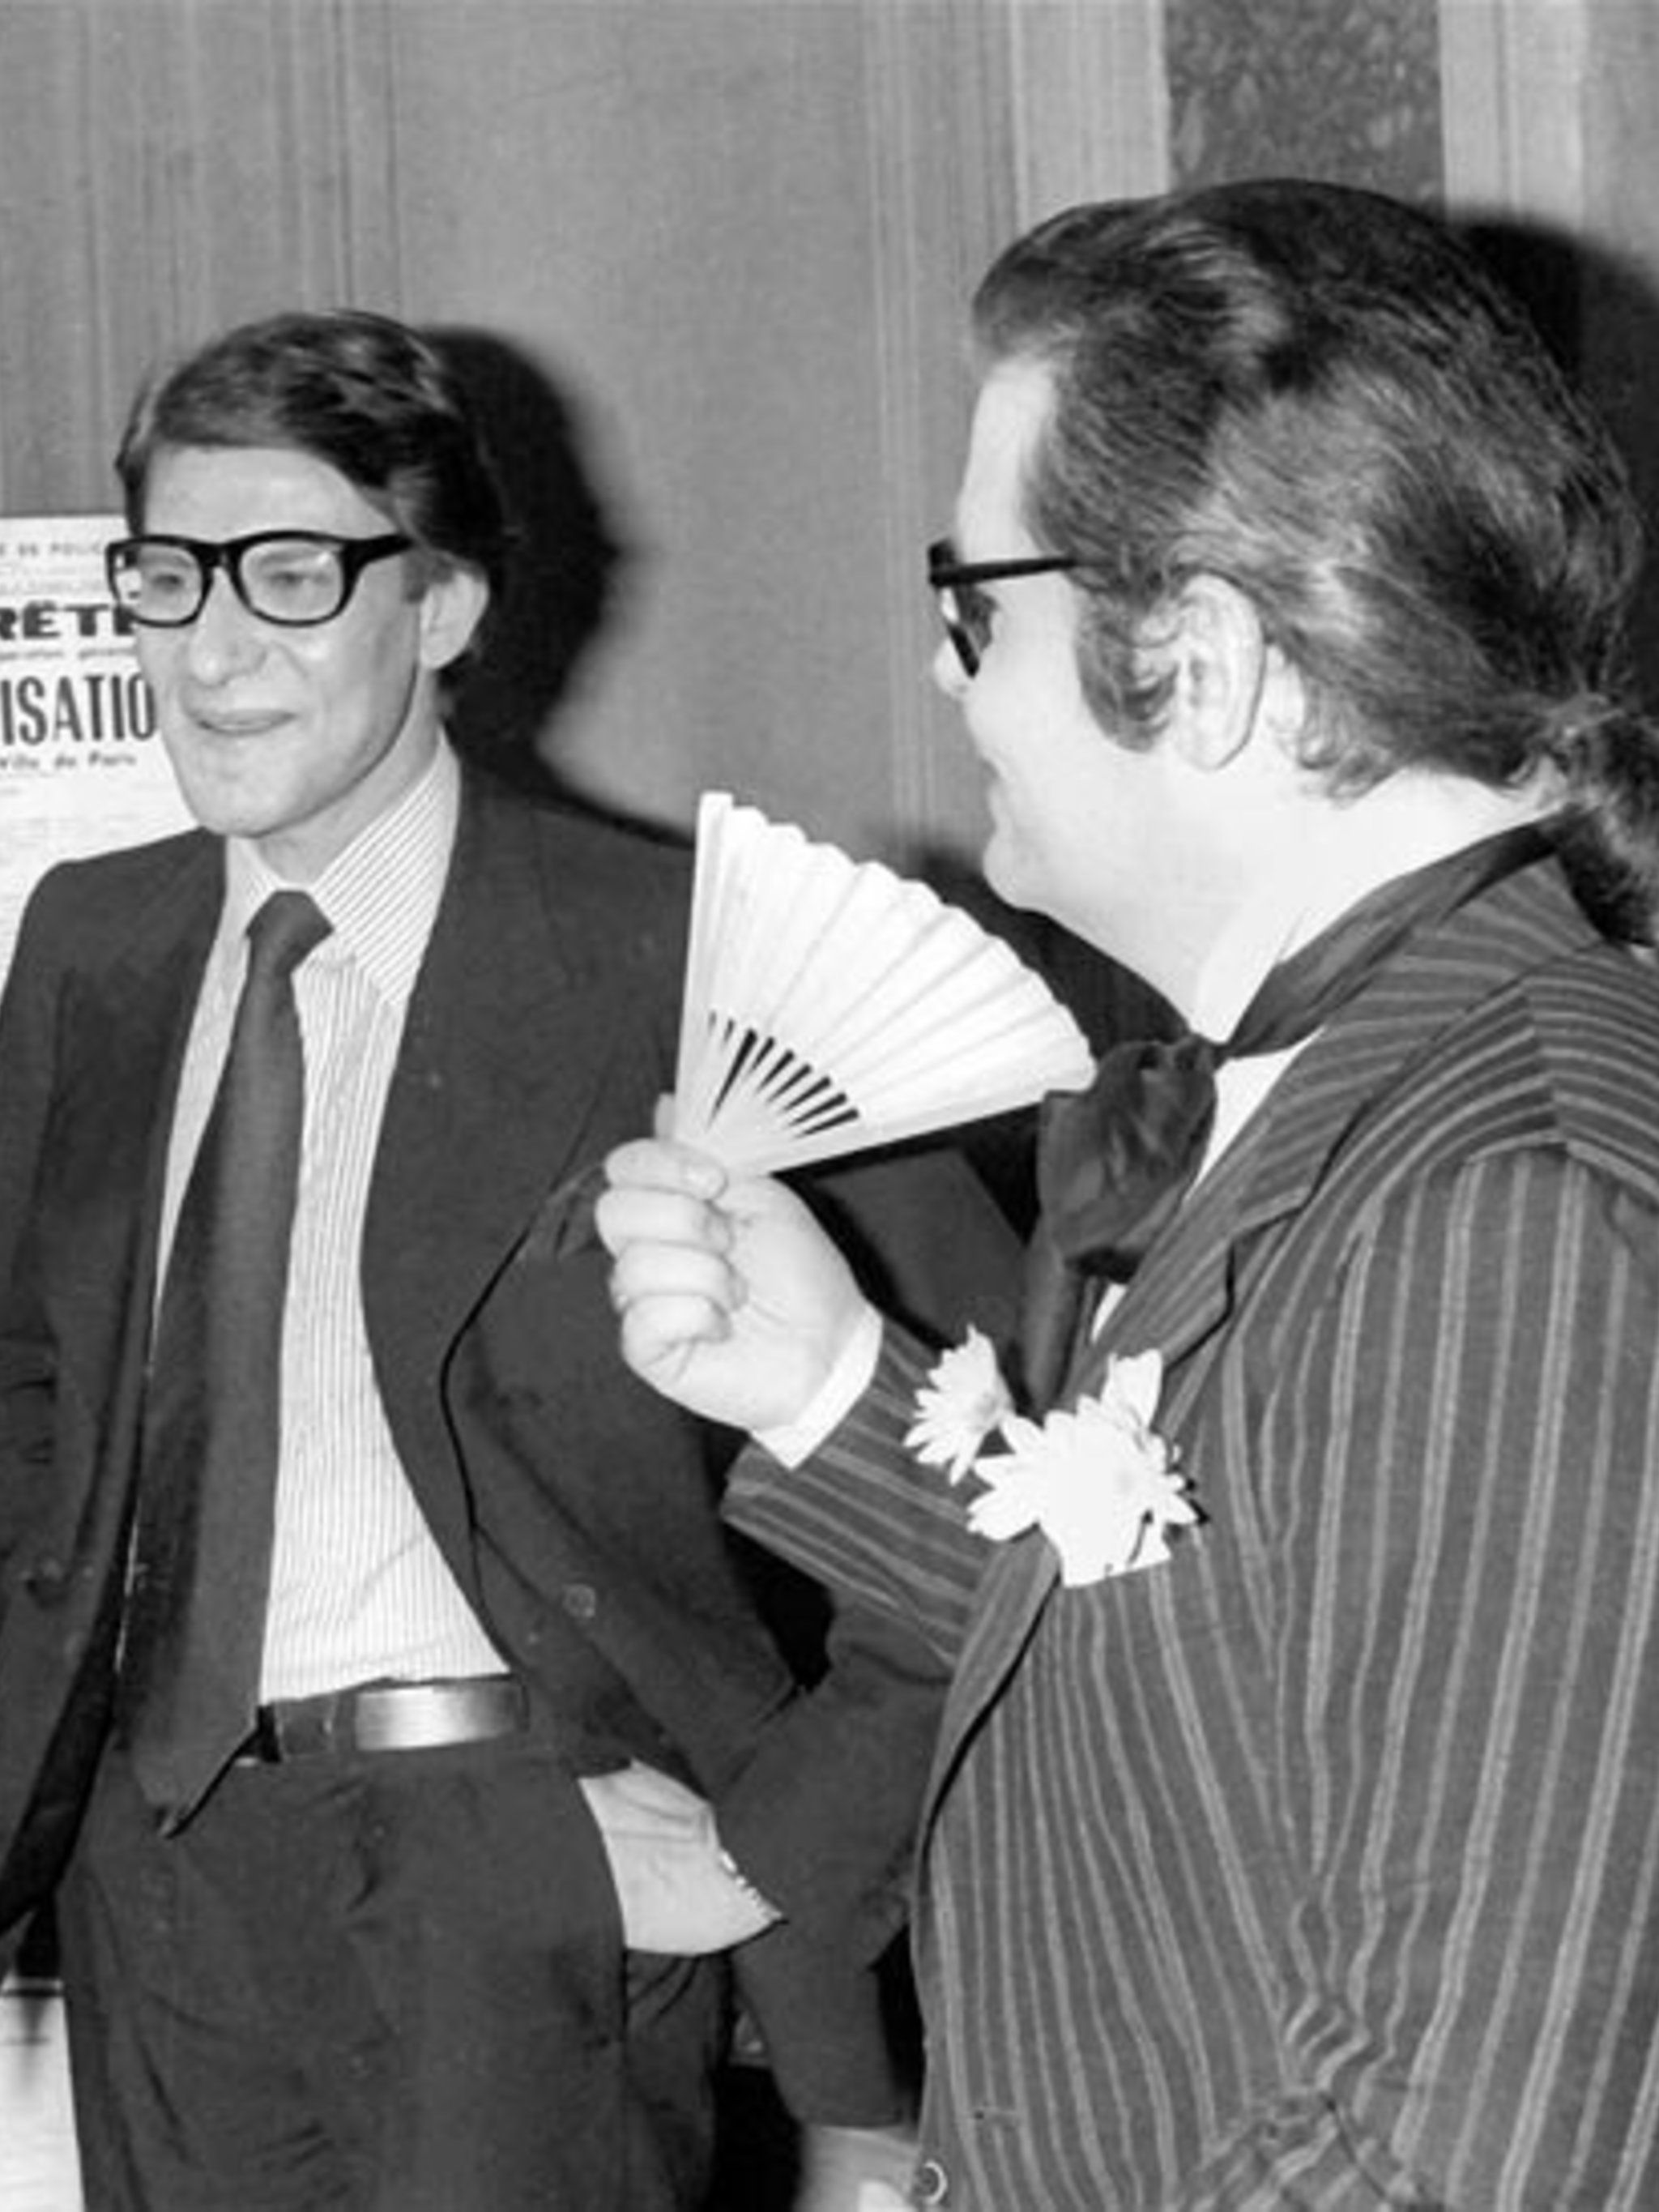 <p>An early-career photograph of Yves Saint Laurent and Karl Lagerfeld</p>